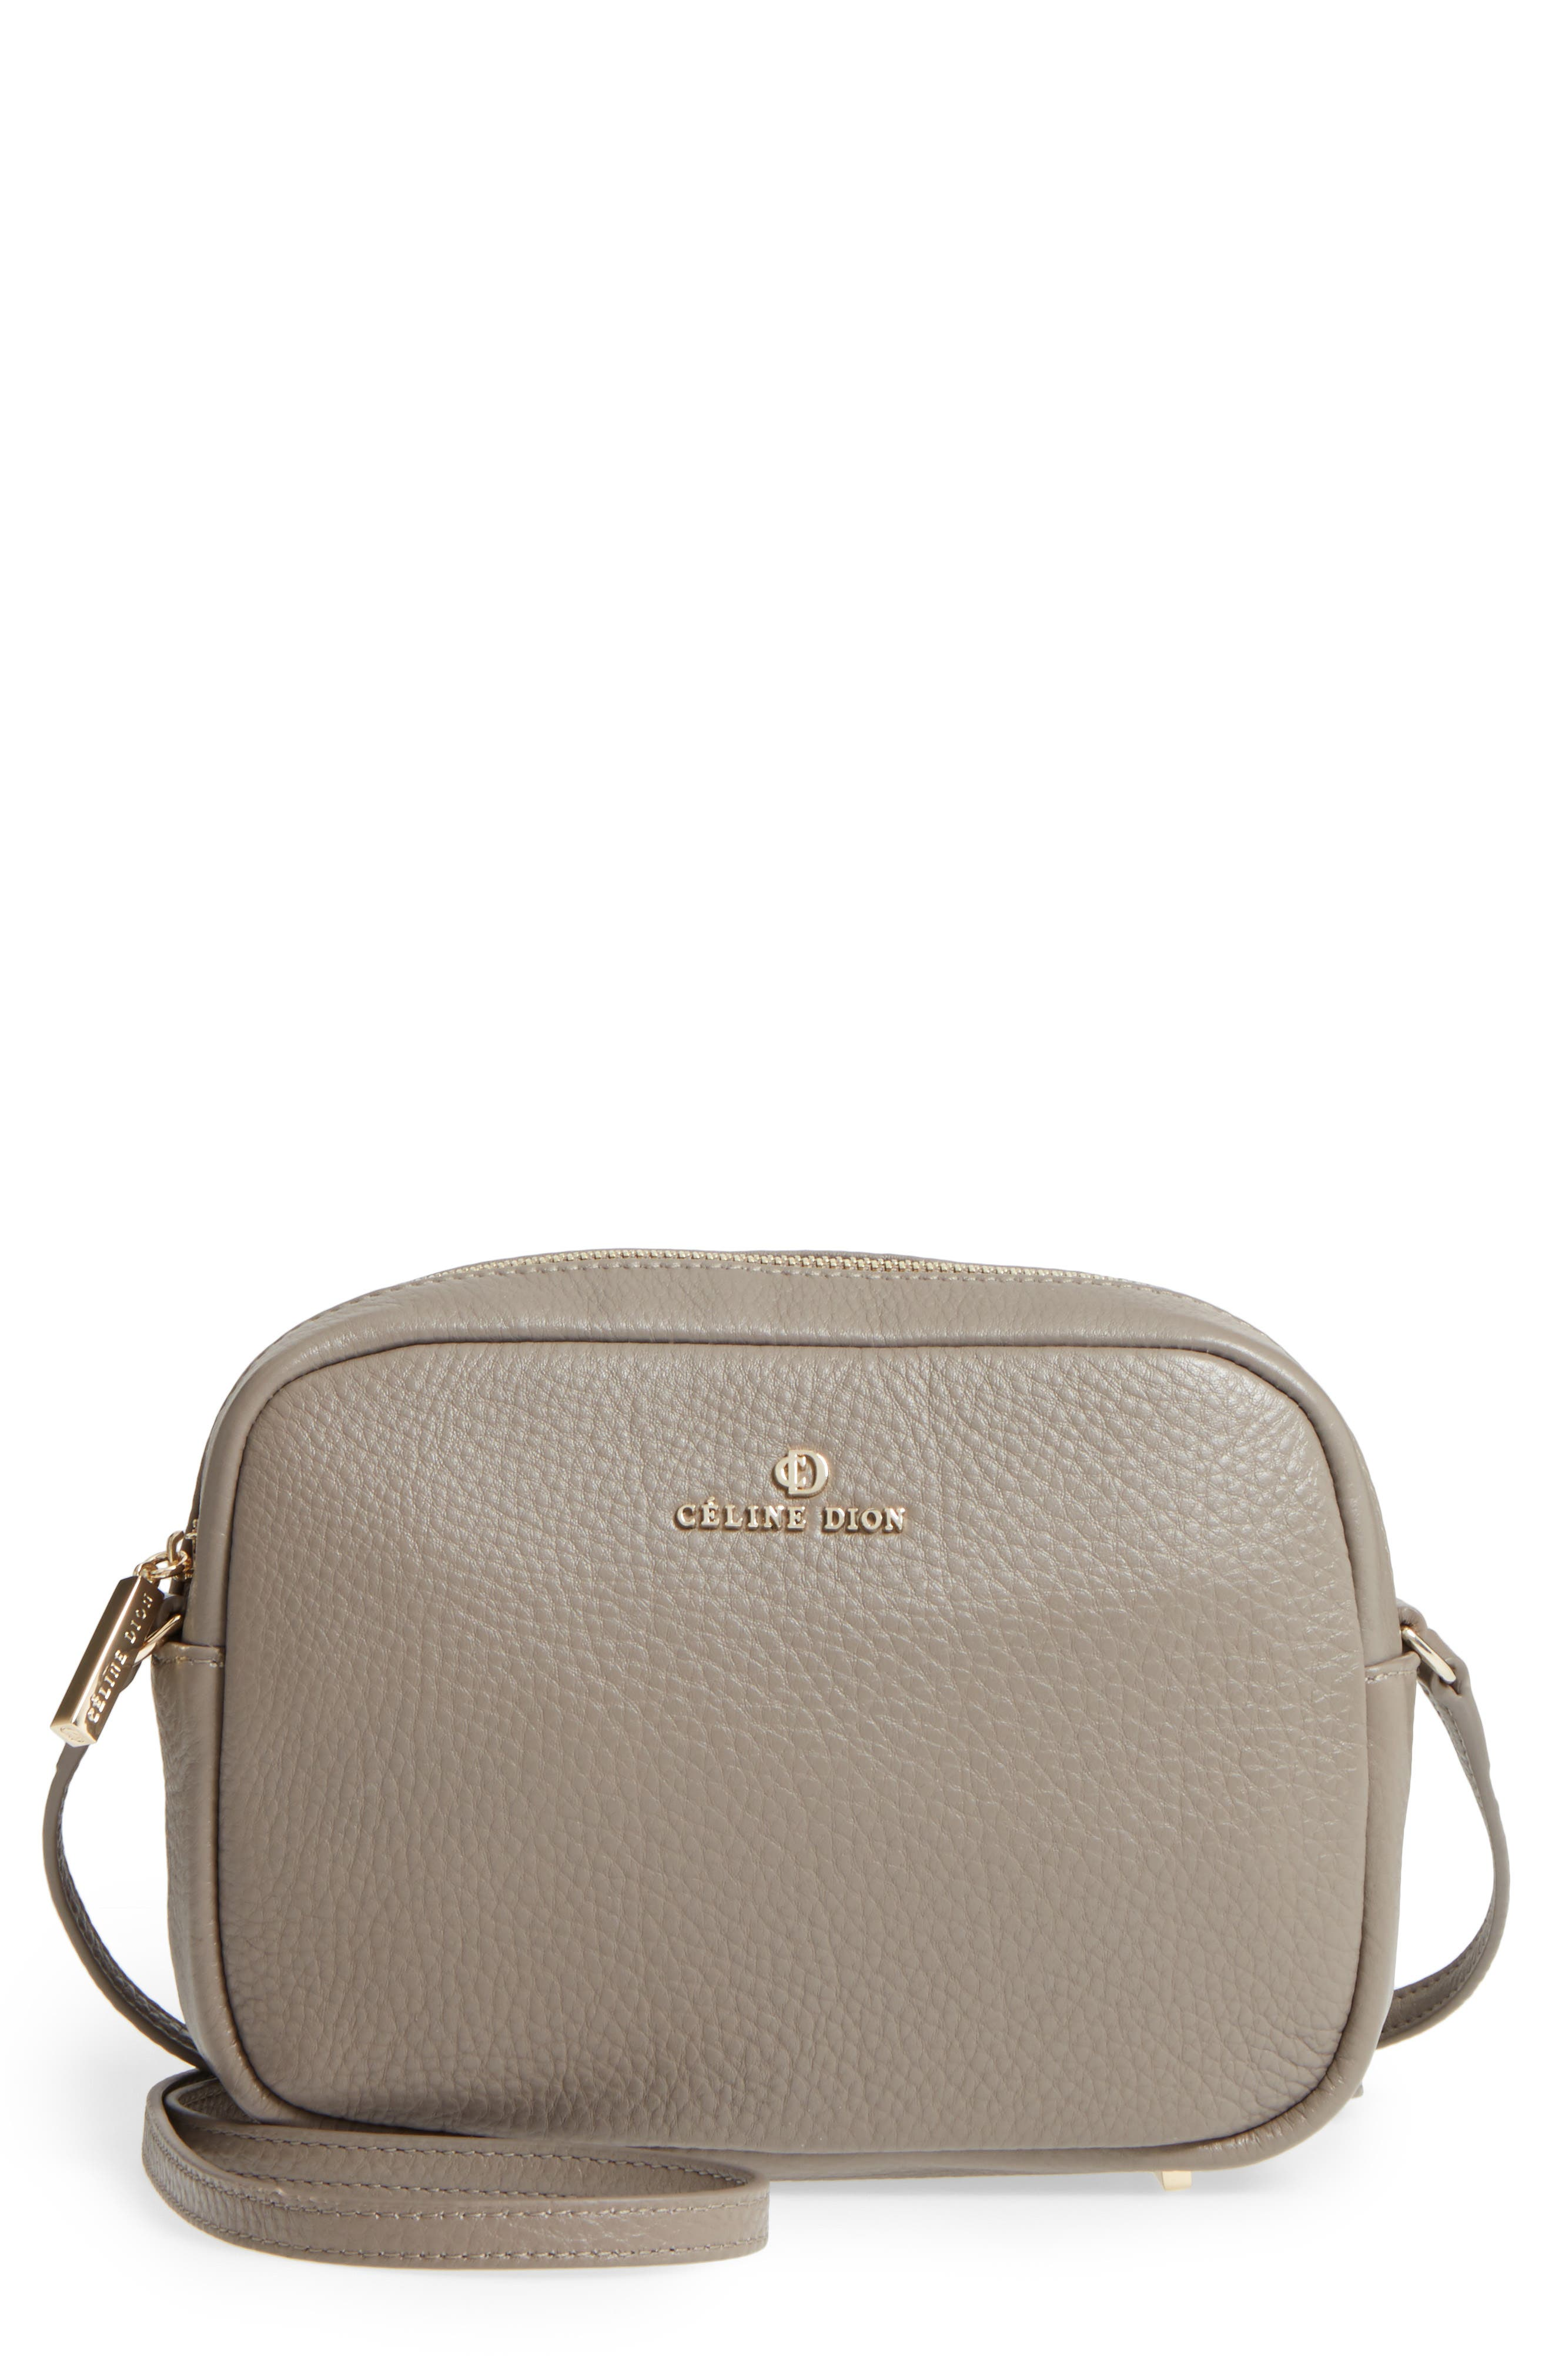 Céline Dion Adagio Leather Camera Crossbody Bag,                             Main thumbnail 1, color,                             Taupe